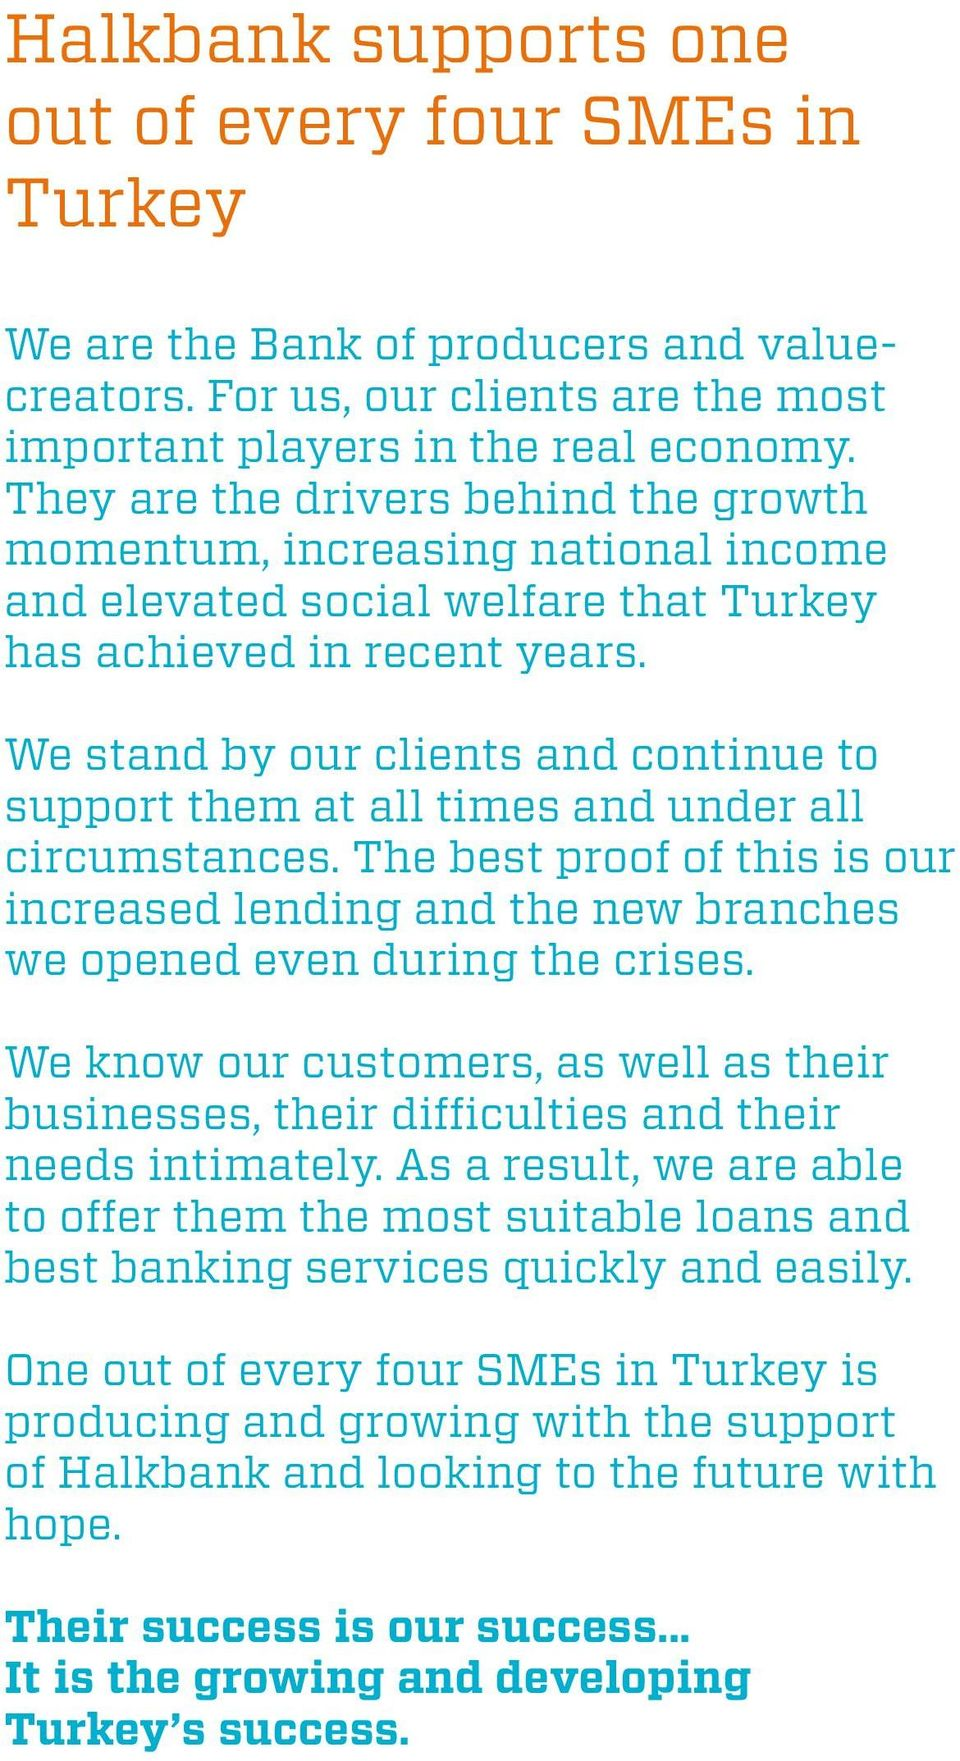 We stand by our clients and continue to support them at all times and under all circumstances. The best proof of this is our increased lending and the new branches we opened even during the crises.